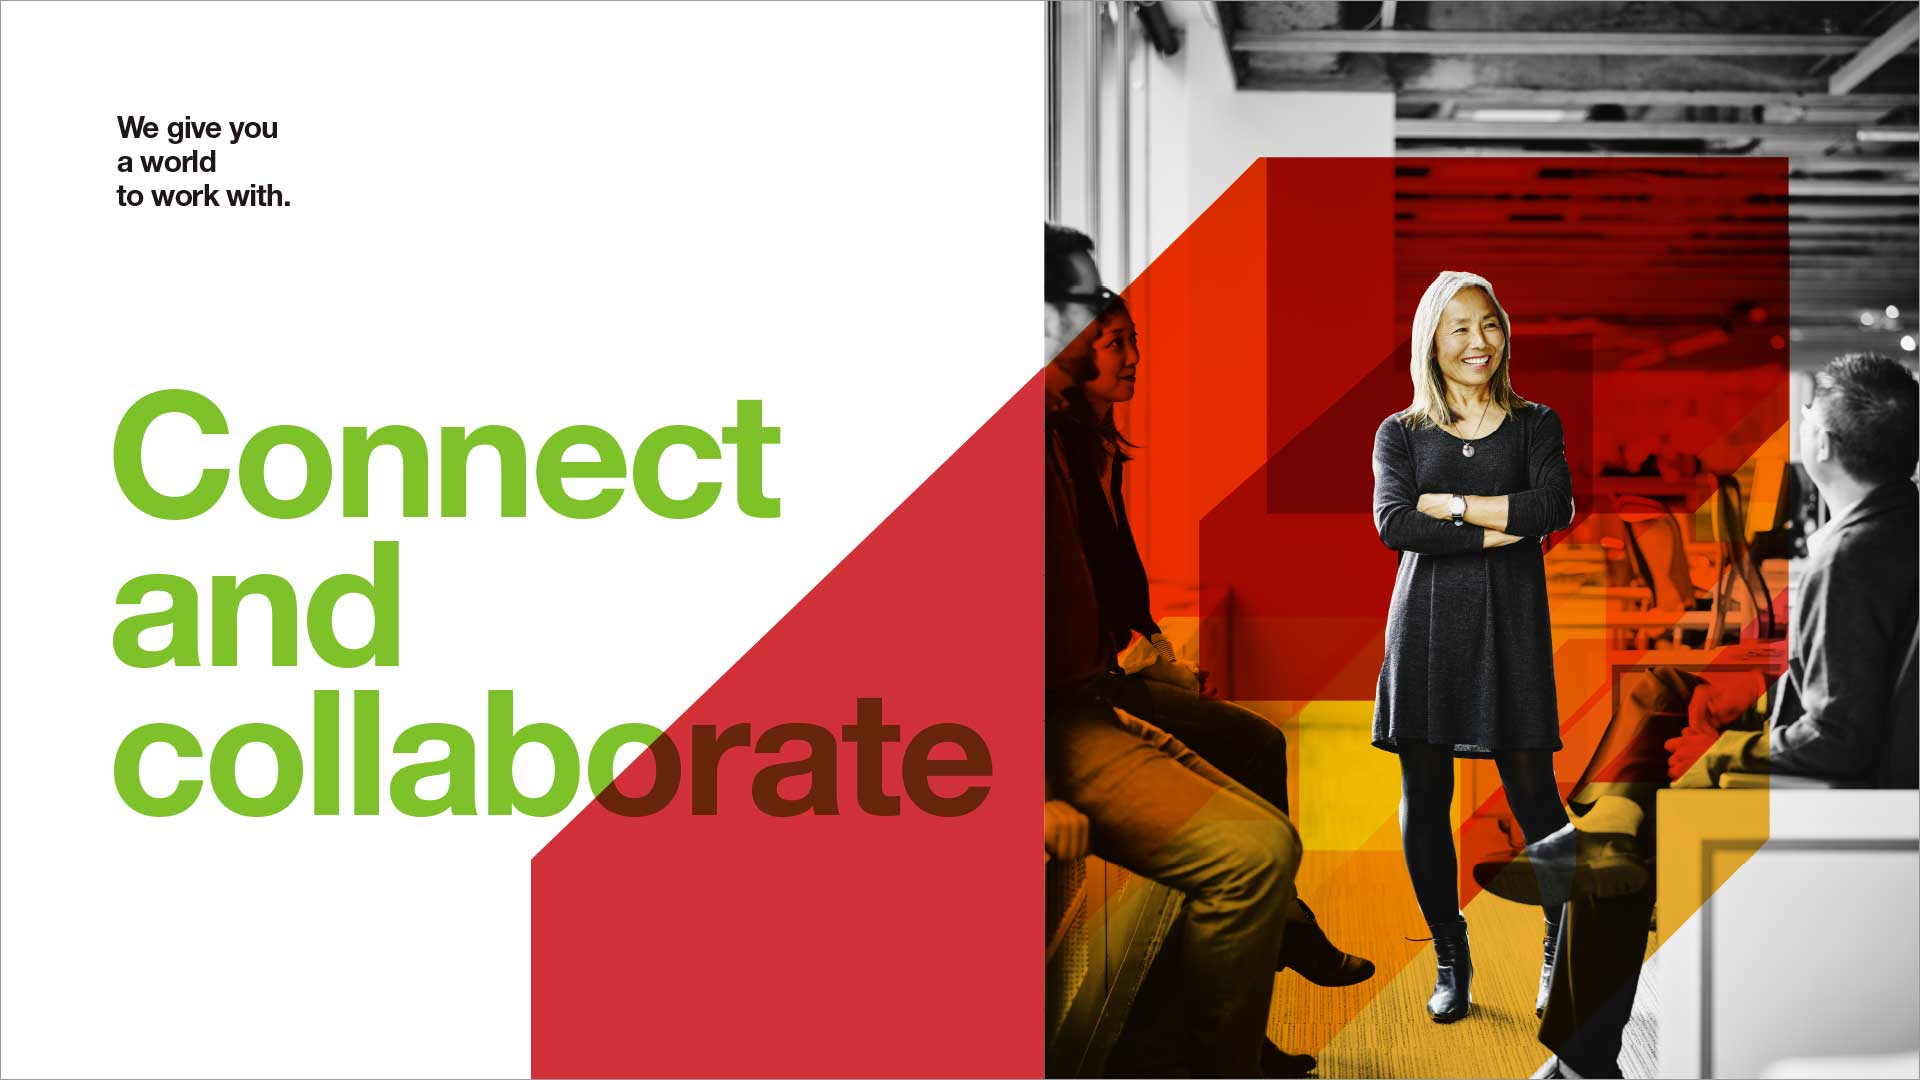 Connect and collaborate design concept, Avery Dennison employer brand, woman in meeting, highlighted by color